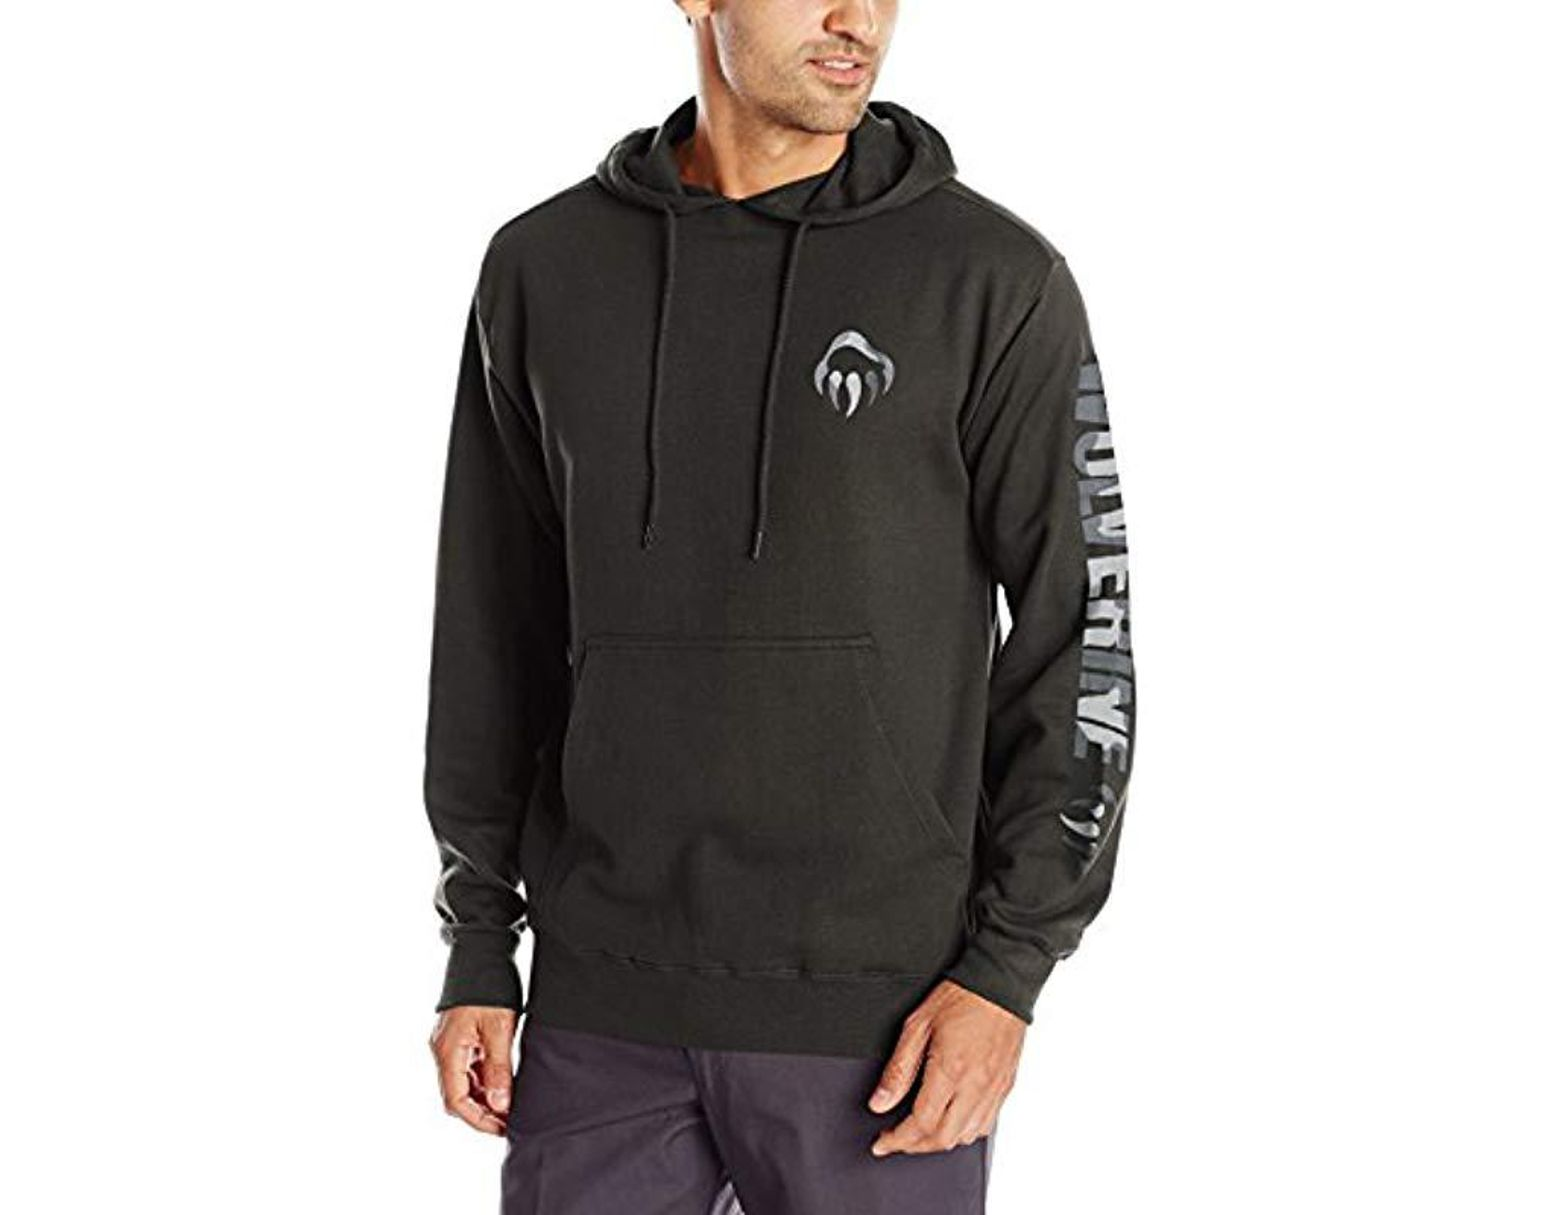 120482e70d8 Wolverine Graphic Camo Claw Hooded Sweatshirt in Gray for Men - Save ...